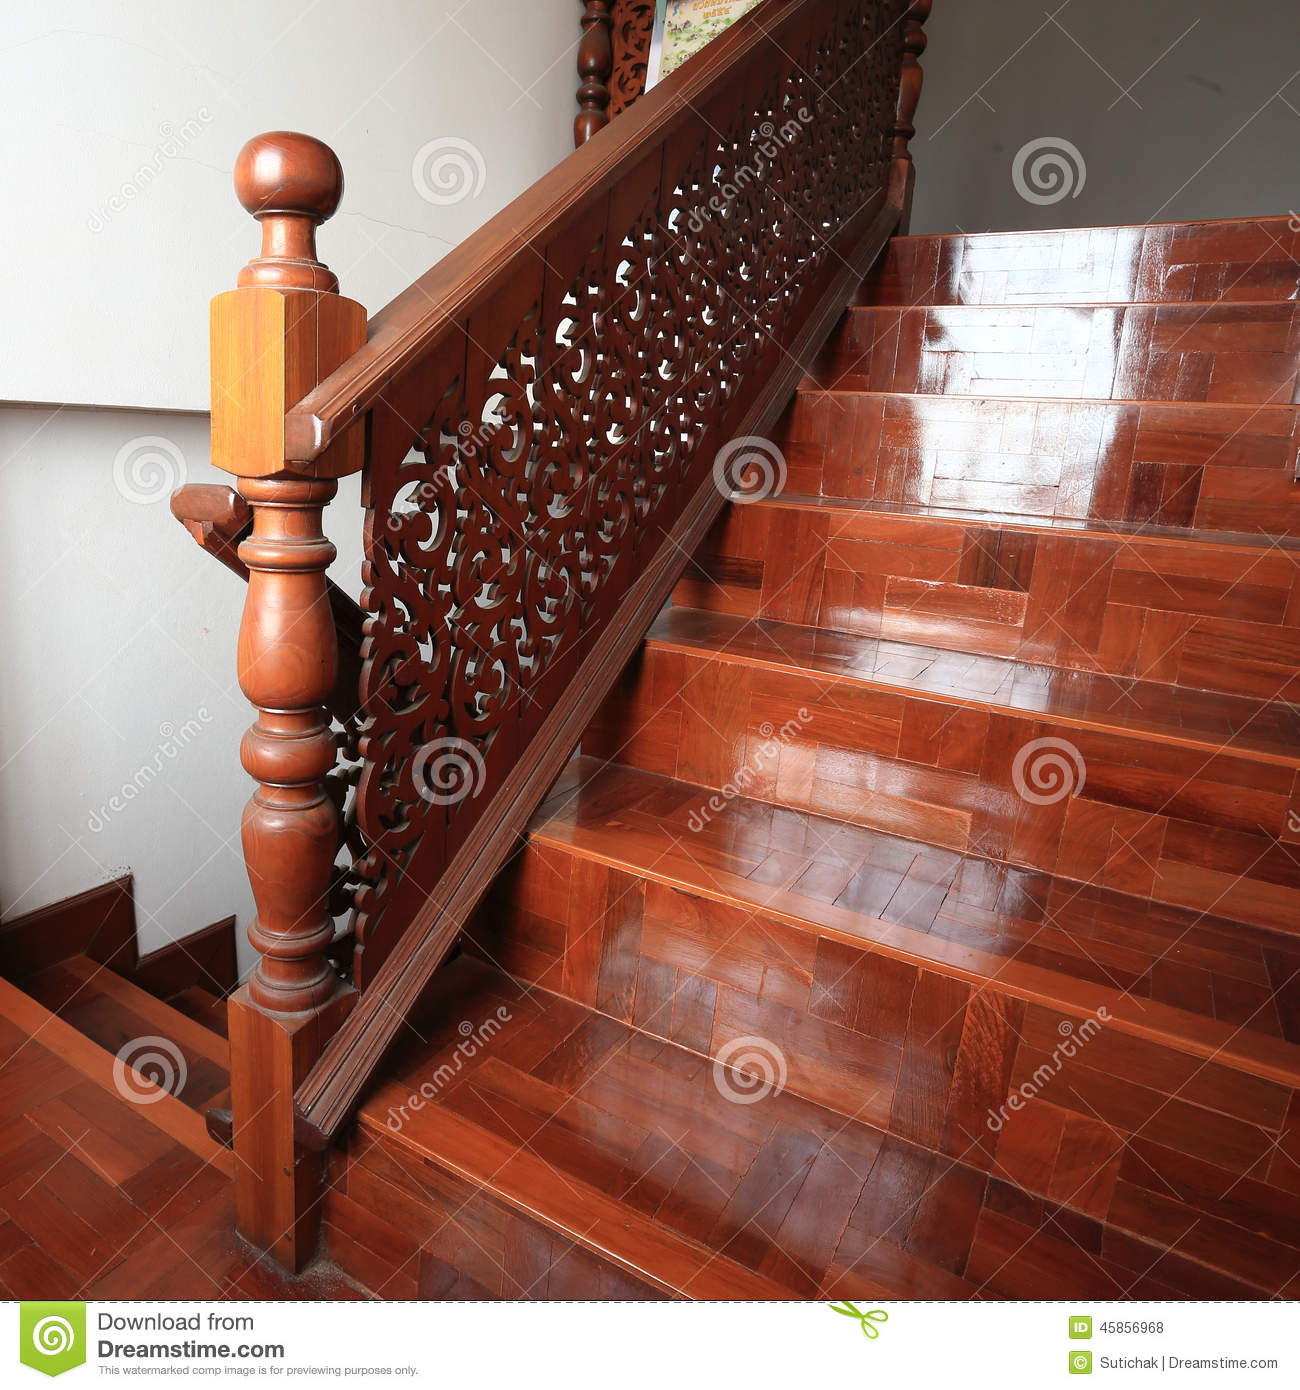 Wood Staircase With Parquet Floor